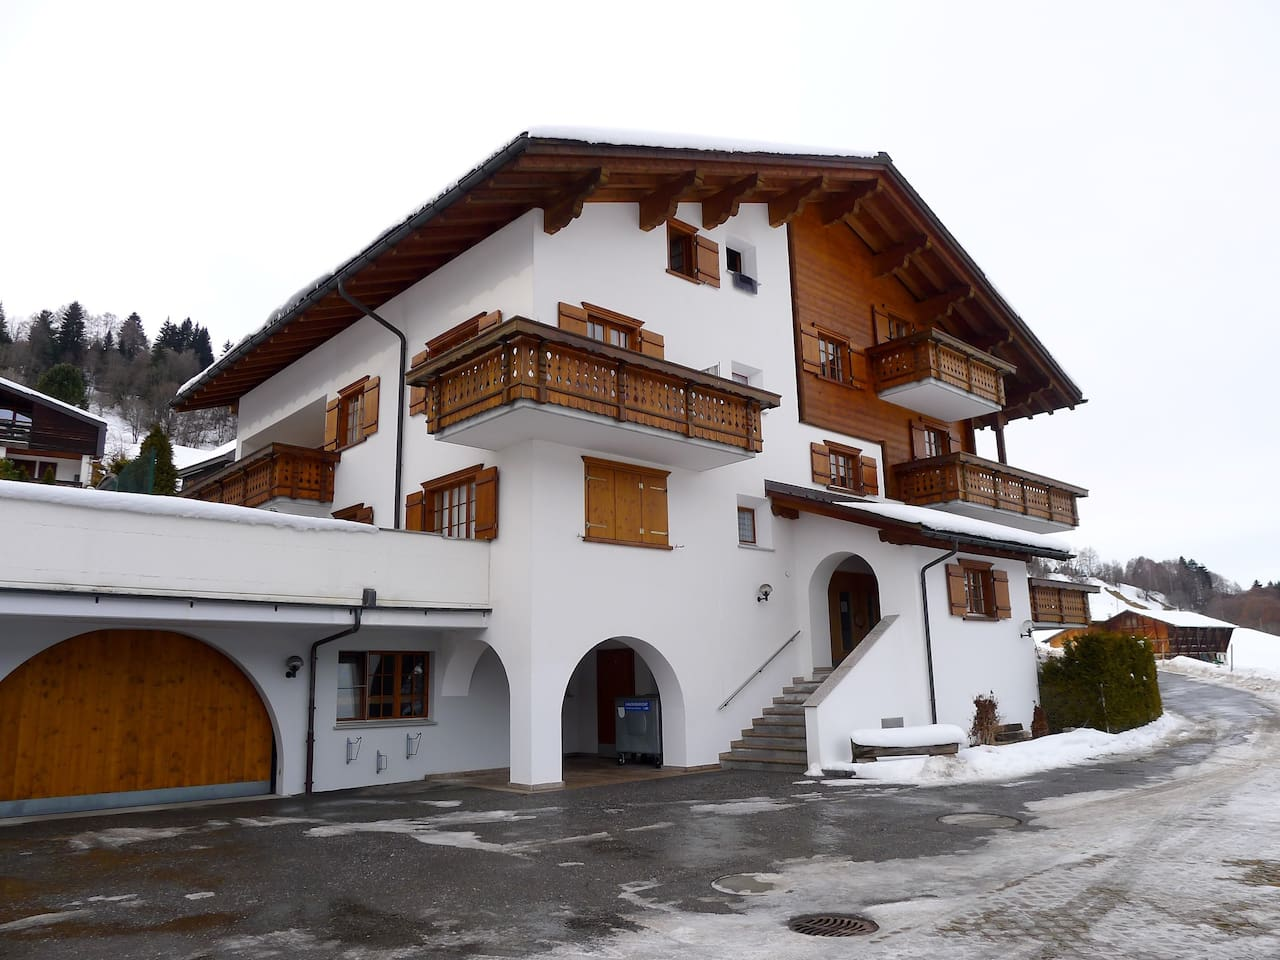 Holidays Apartment (2 bedrooms) 120m2  for 4 o 6 people, in Conters im Prättigau, Klosters/Davos Ski Resort